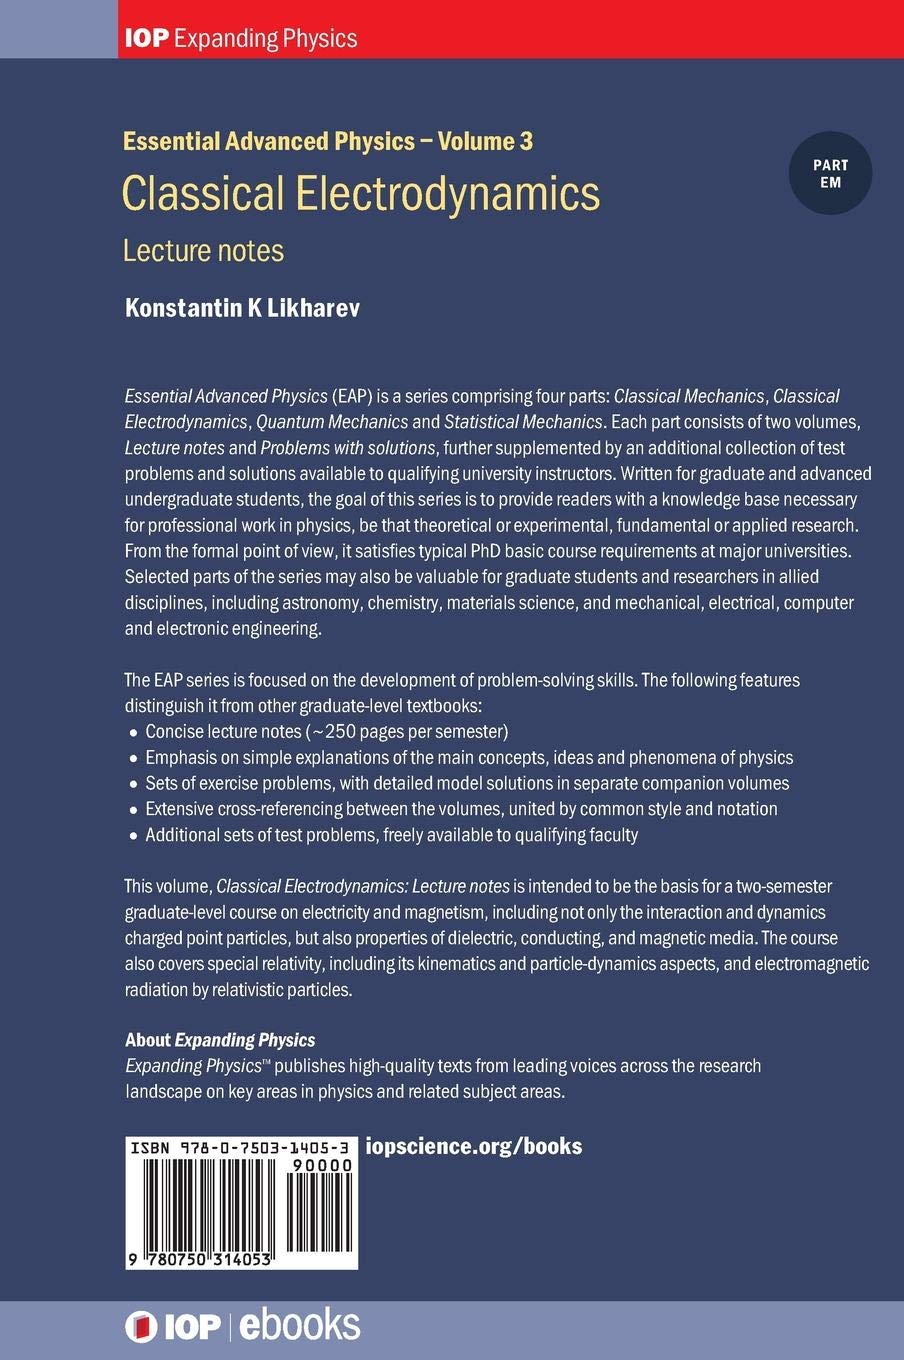 Classical Electrodynamics, Volume 3: Lecture notes (IOP Expanding